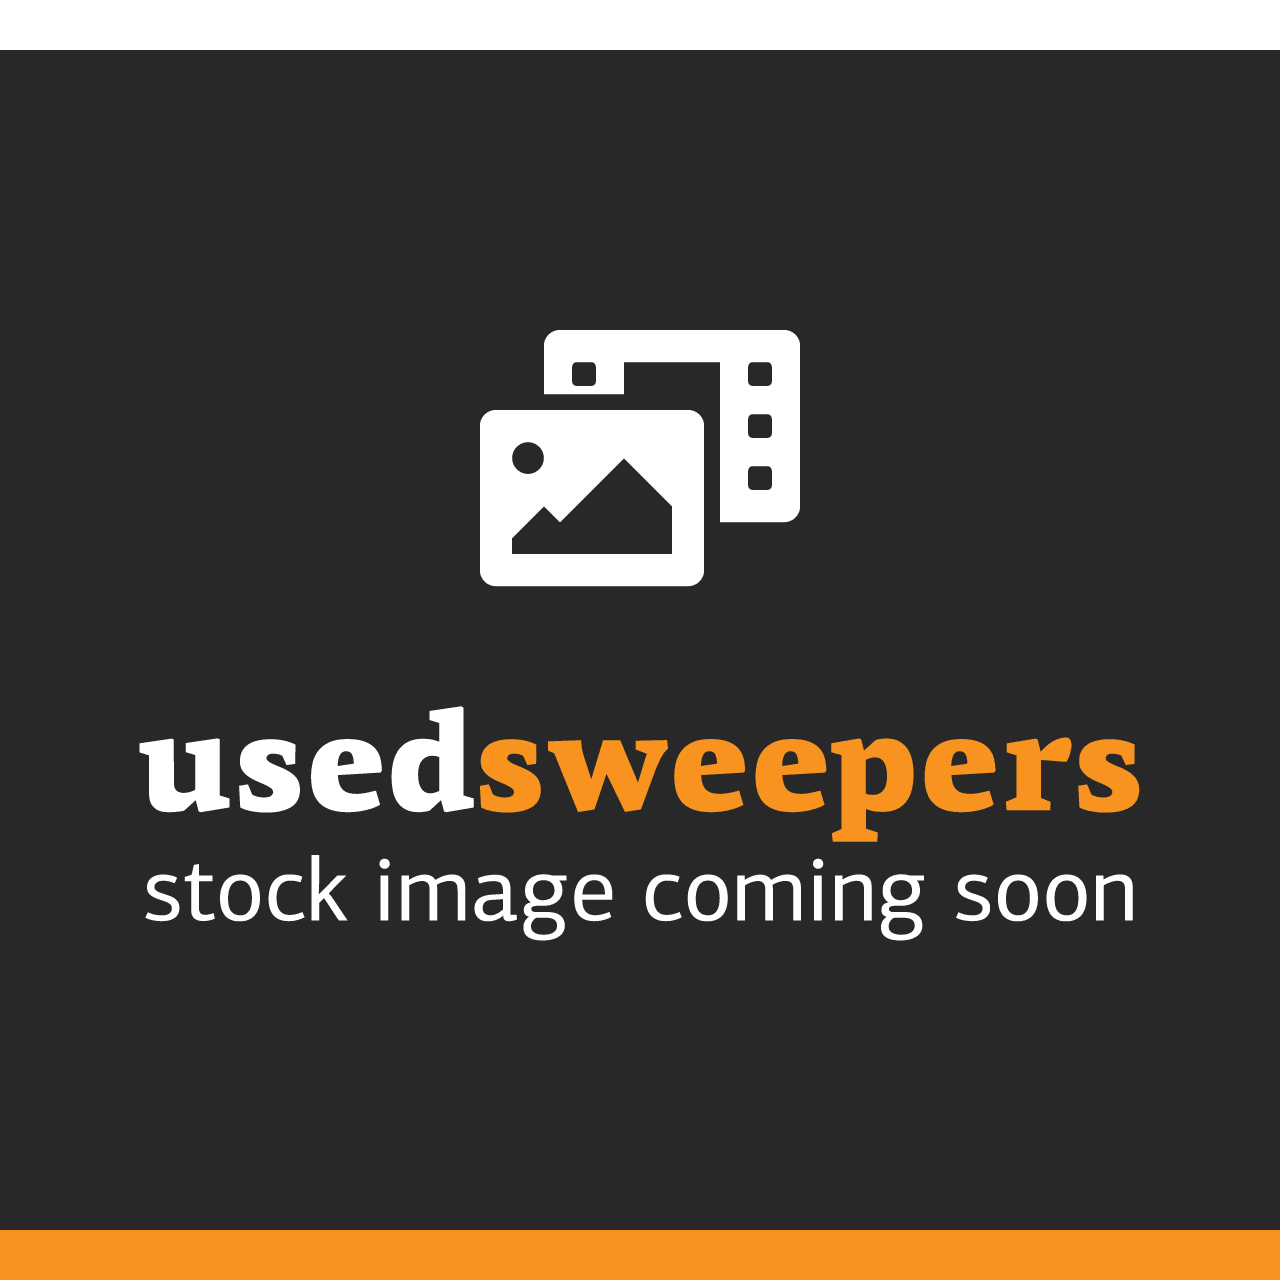 2009 [09] Mercedes-Benz Atego  Scarab Mistral Cummings Twin-Drive 6.2 Used Road Sweeper